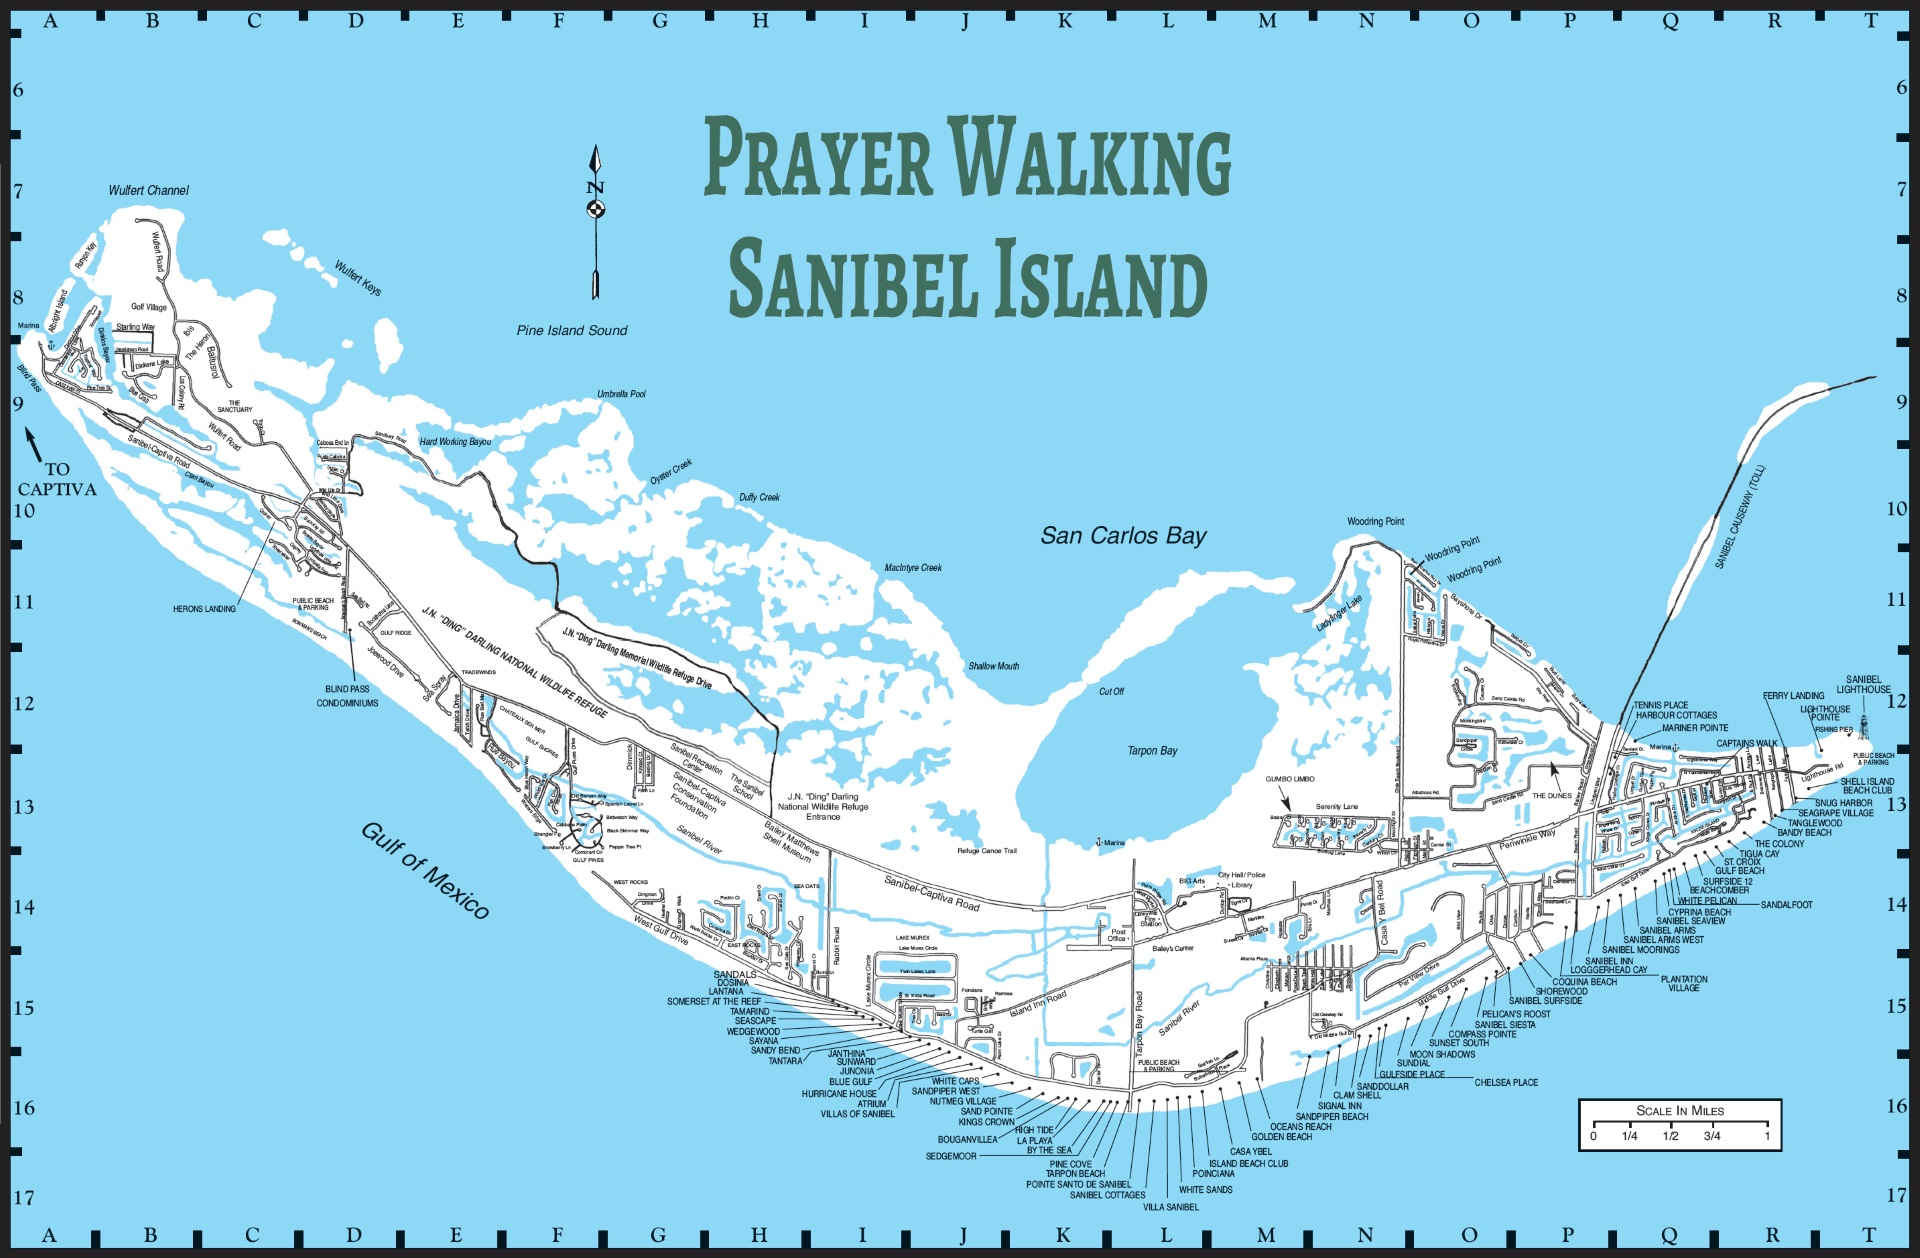 Prayer Walking the Islands